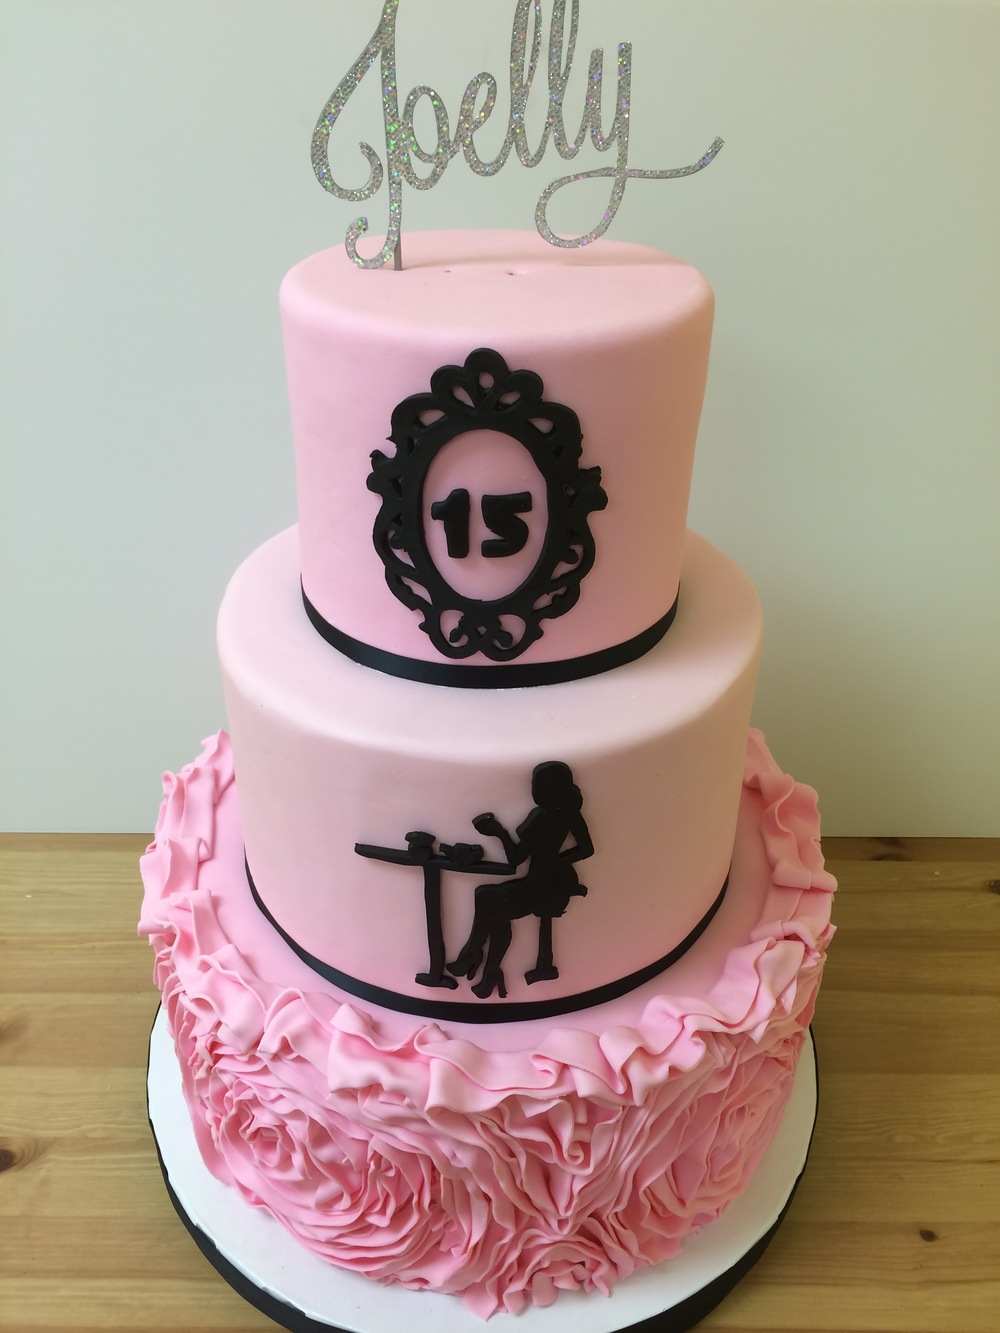 Paris Quinceanera Cake | Sugar Lab Bake Shop